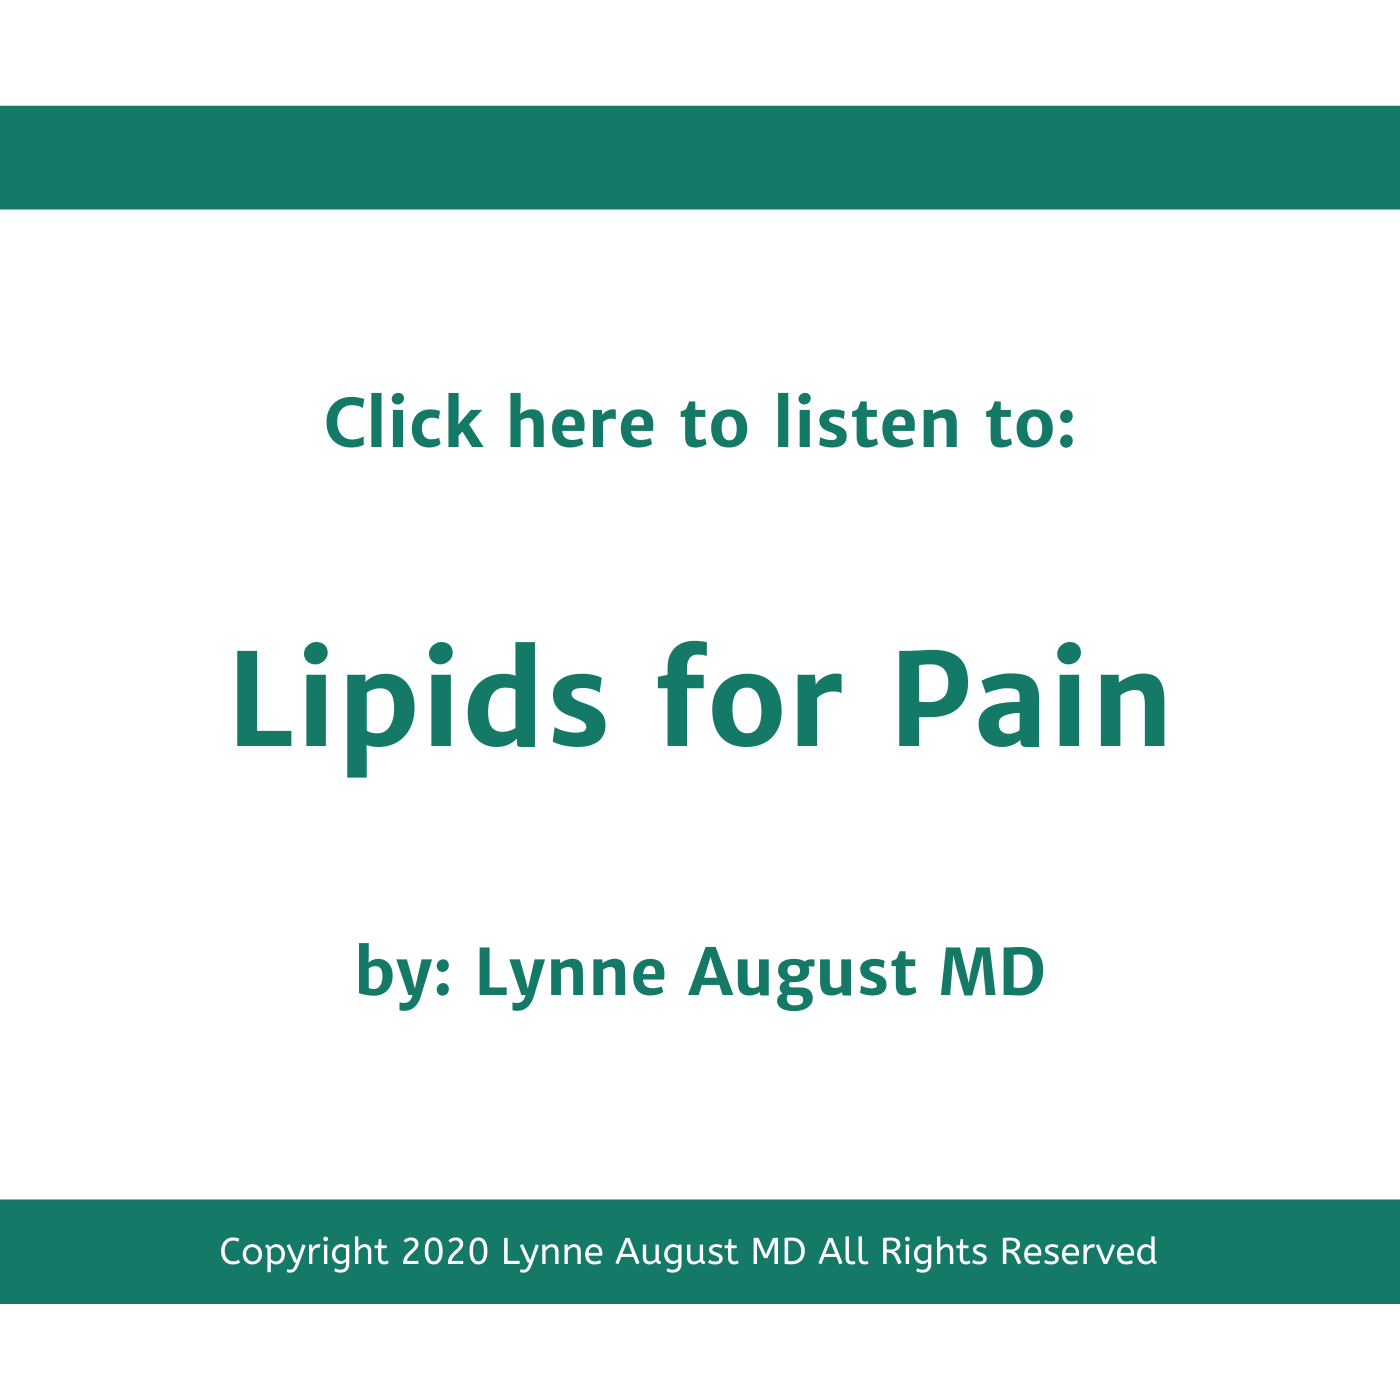 Podcast title image for Lipids for Pain by Lynne August